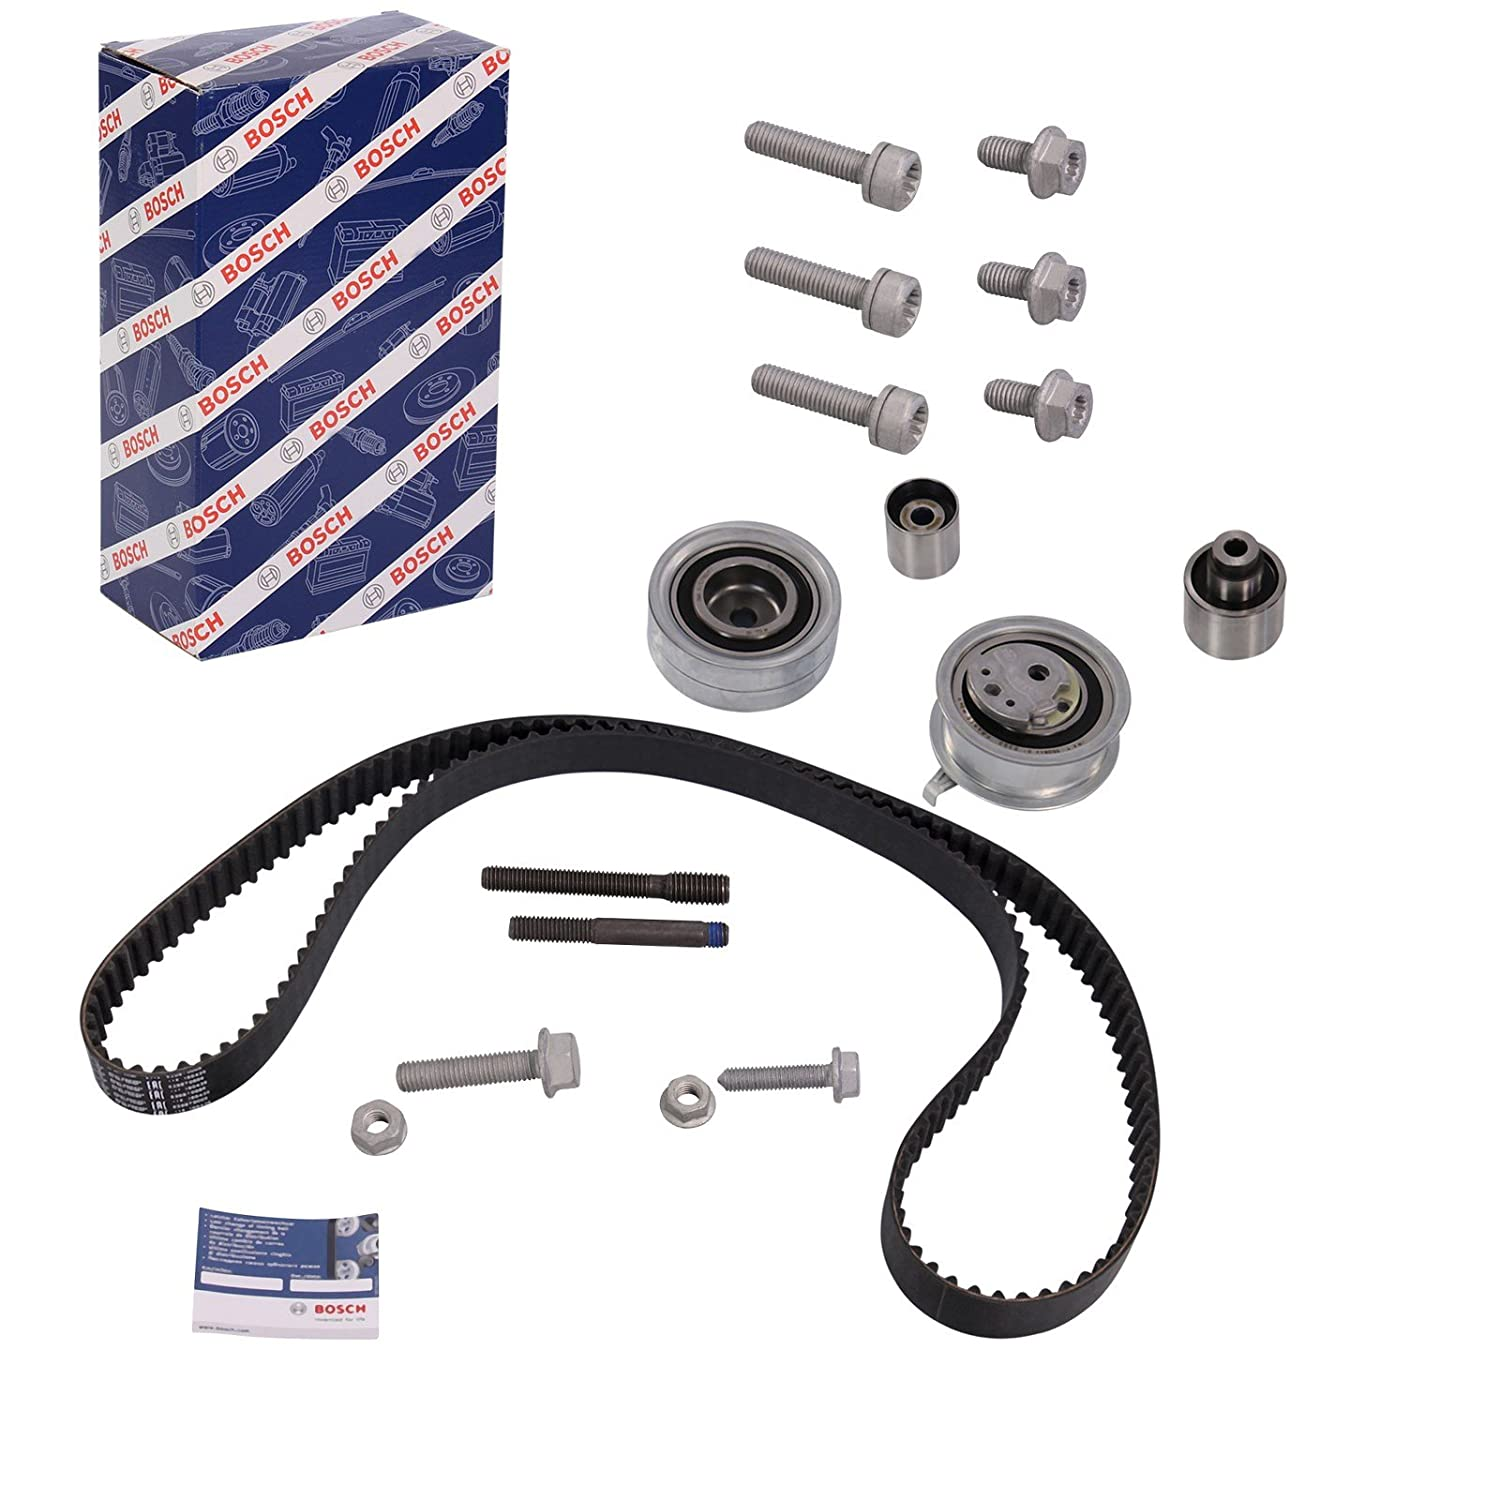 1 x Bosch timing belt kit